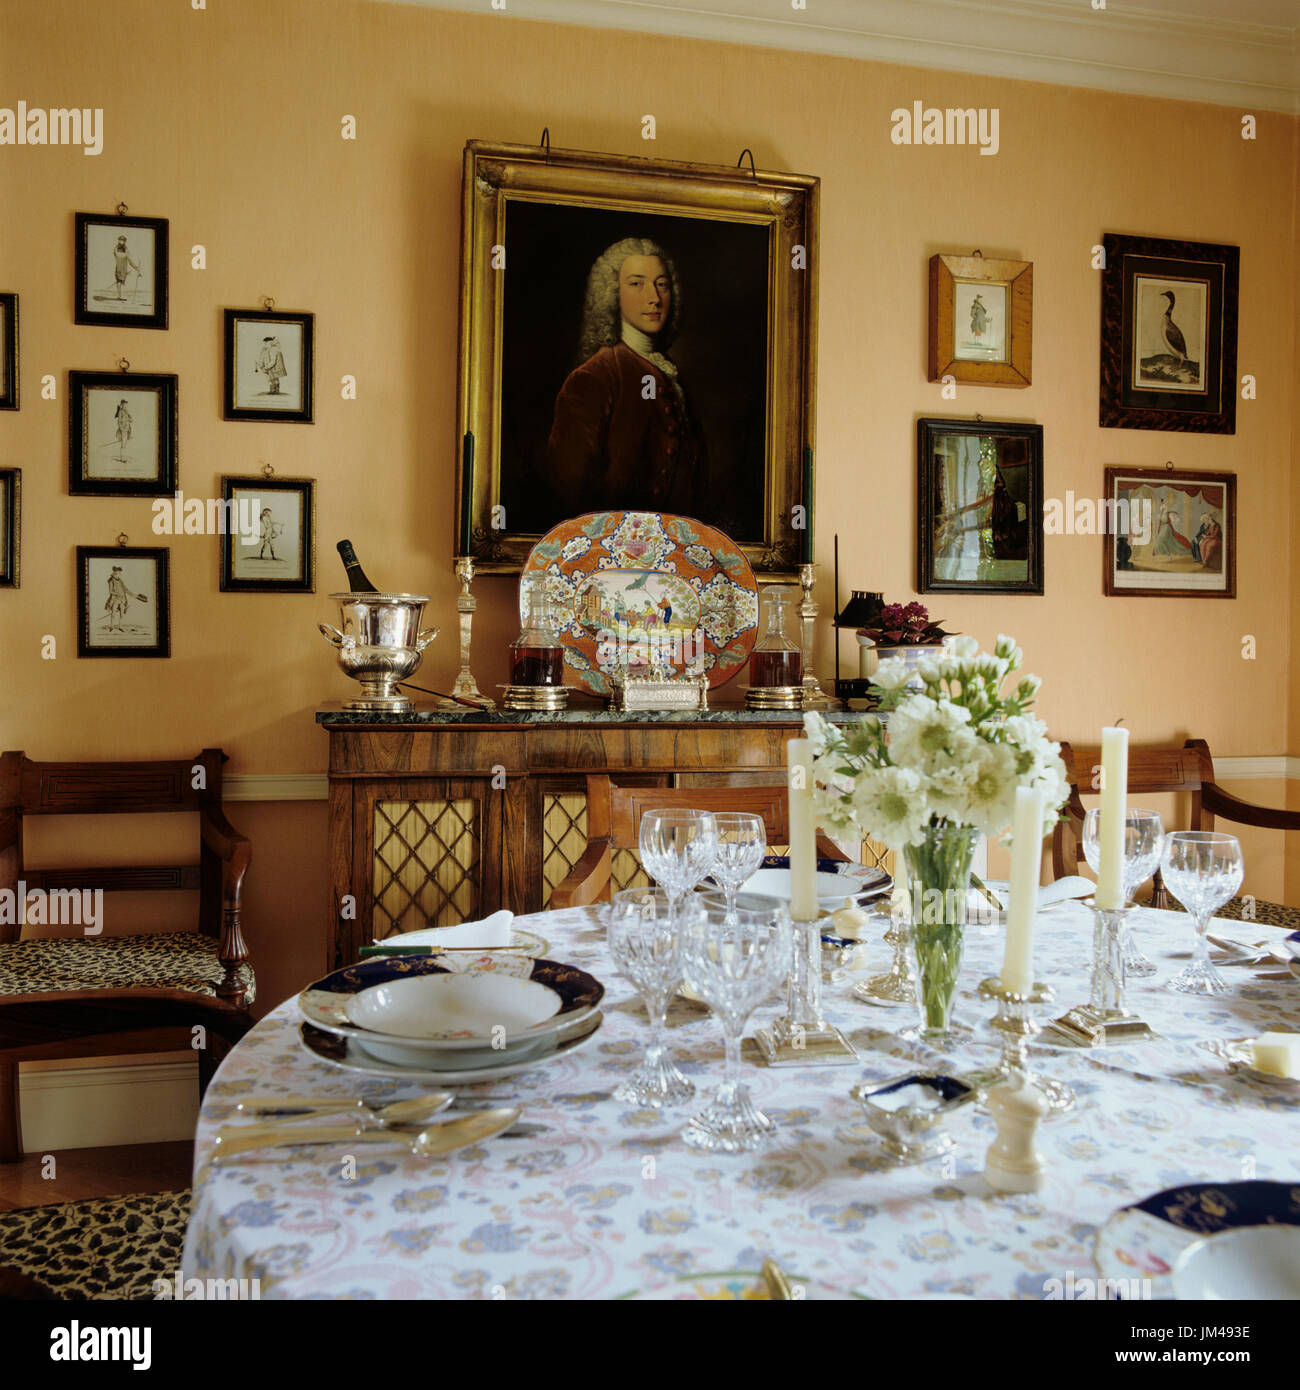 Dining room with portrait stock image